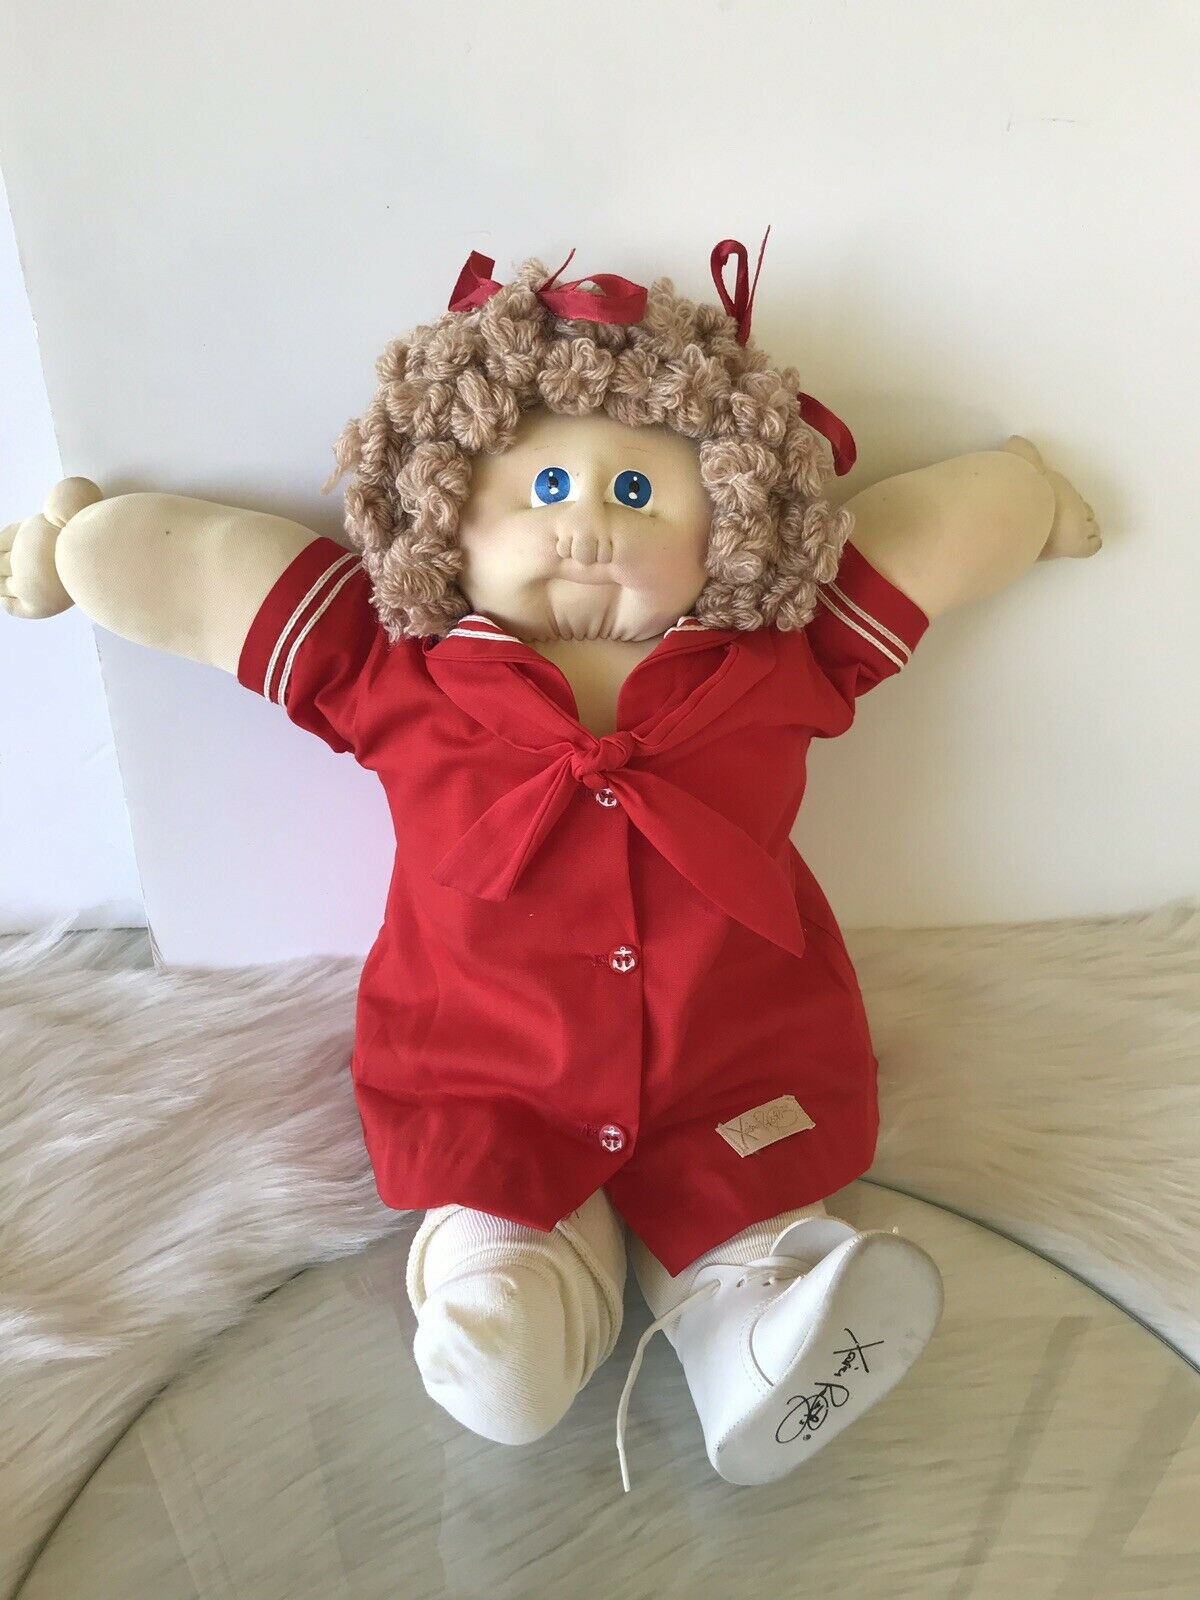 1985 Xavier Roberts Signed Little People Soft Sculpture Blau Eyes Curly Hair